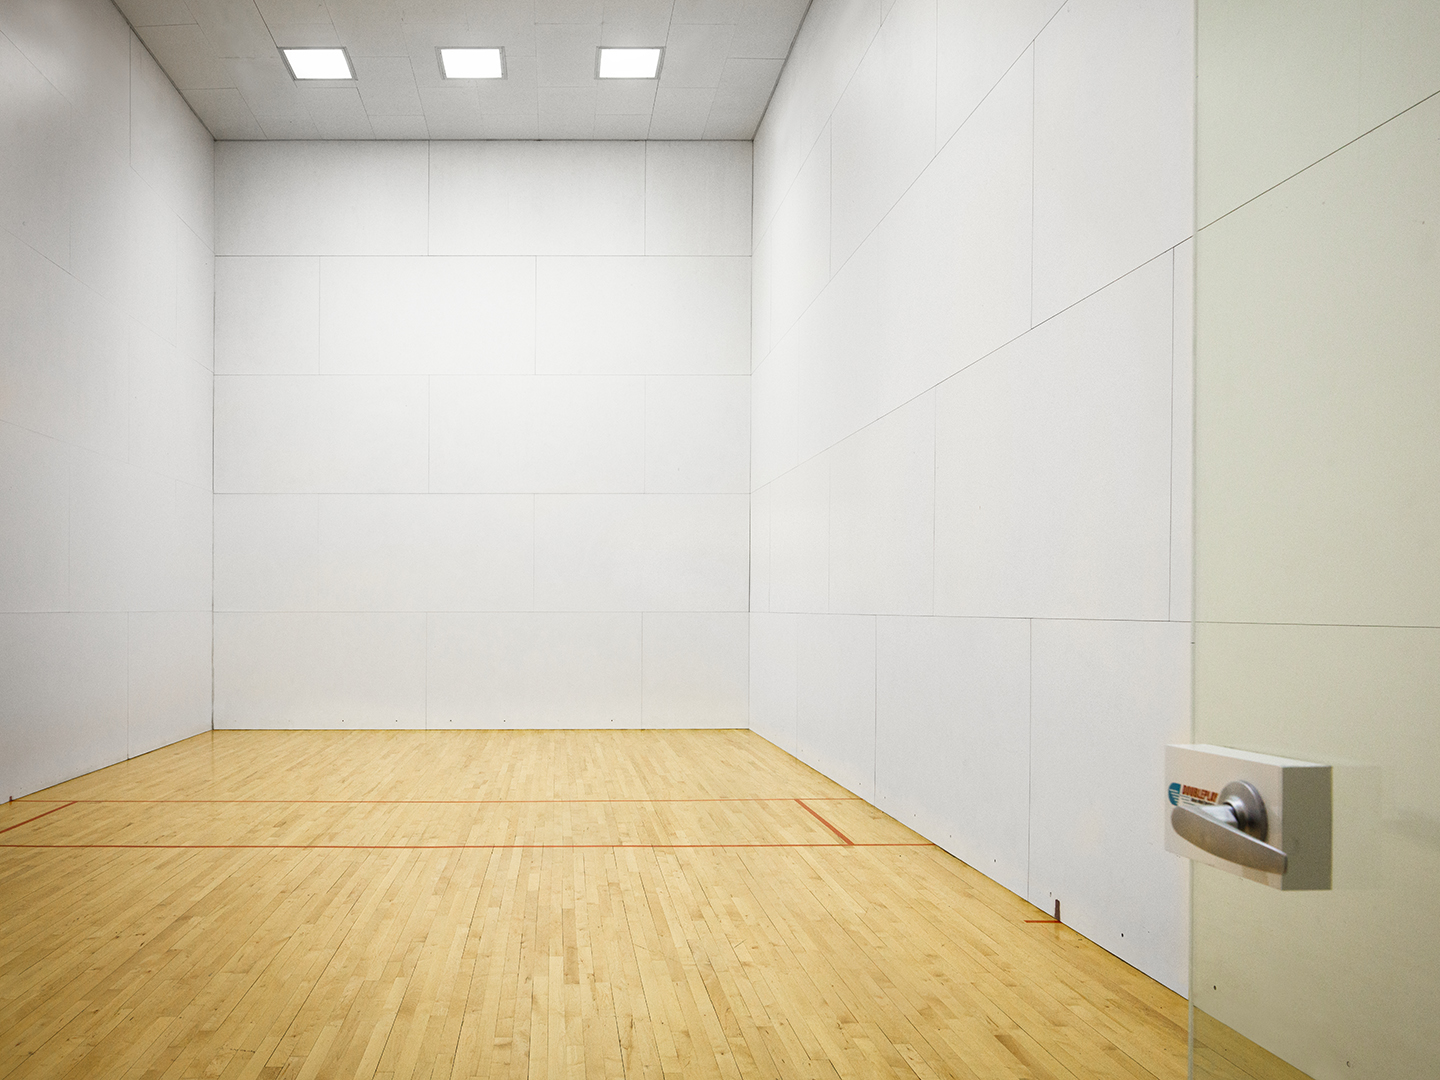 Marriott's StreamSide - Birch Racquetball Court. Marriott's StreamSide - Birch is located in Vail, Colorado United States.